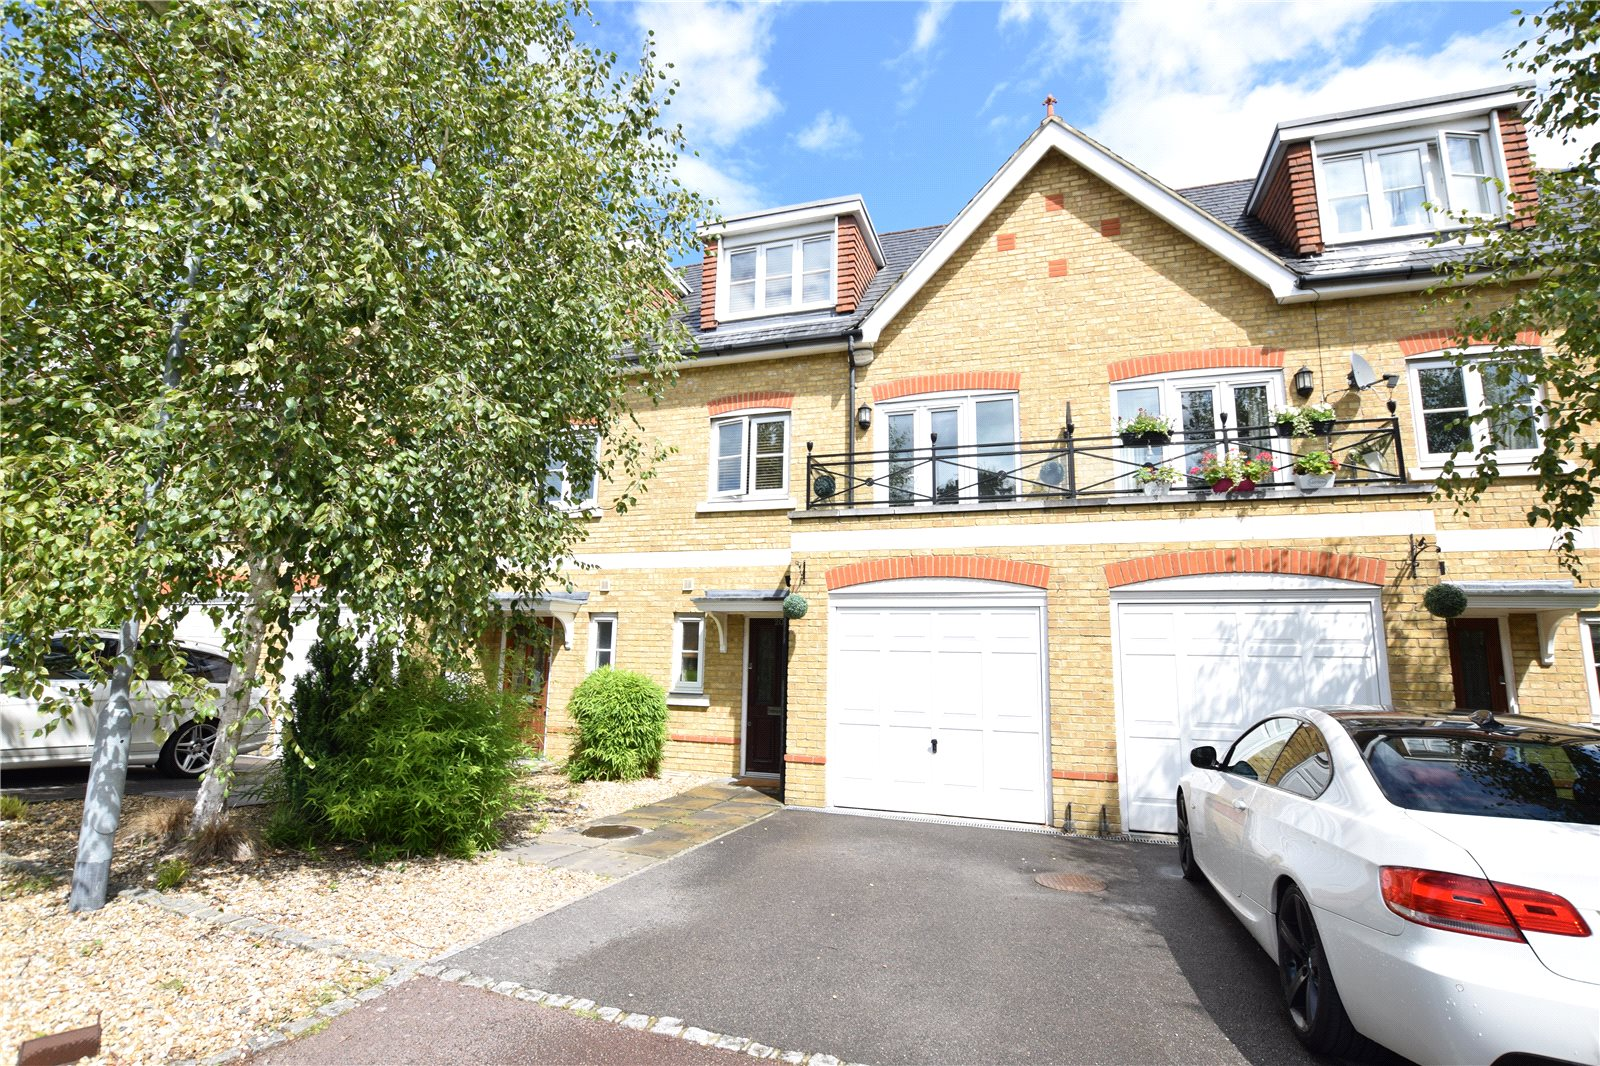 4 Bedrooms Terraced House for sale in Bardeen Place, Bracknell, Berkshire, RG12